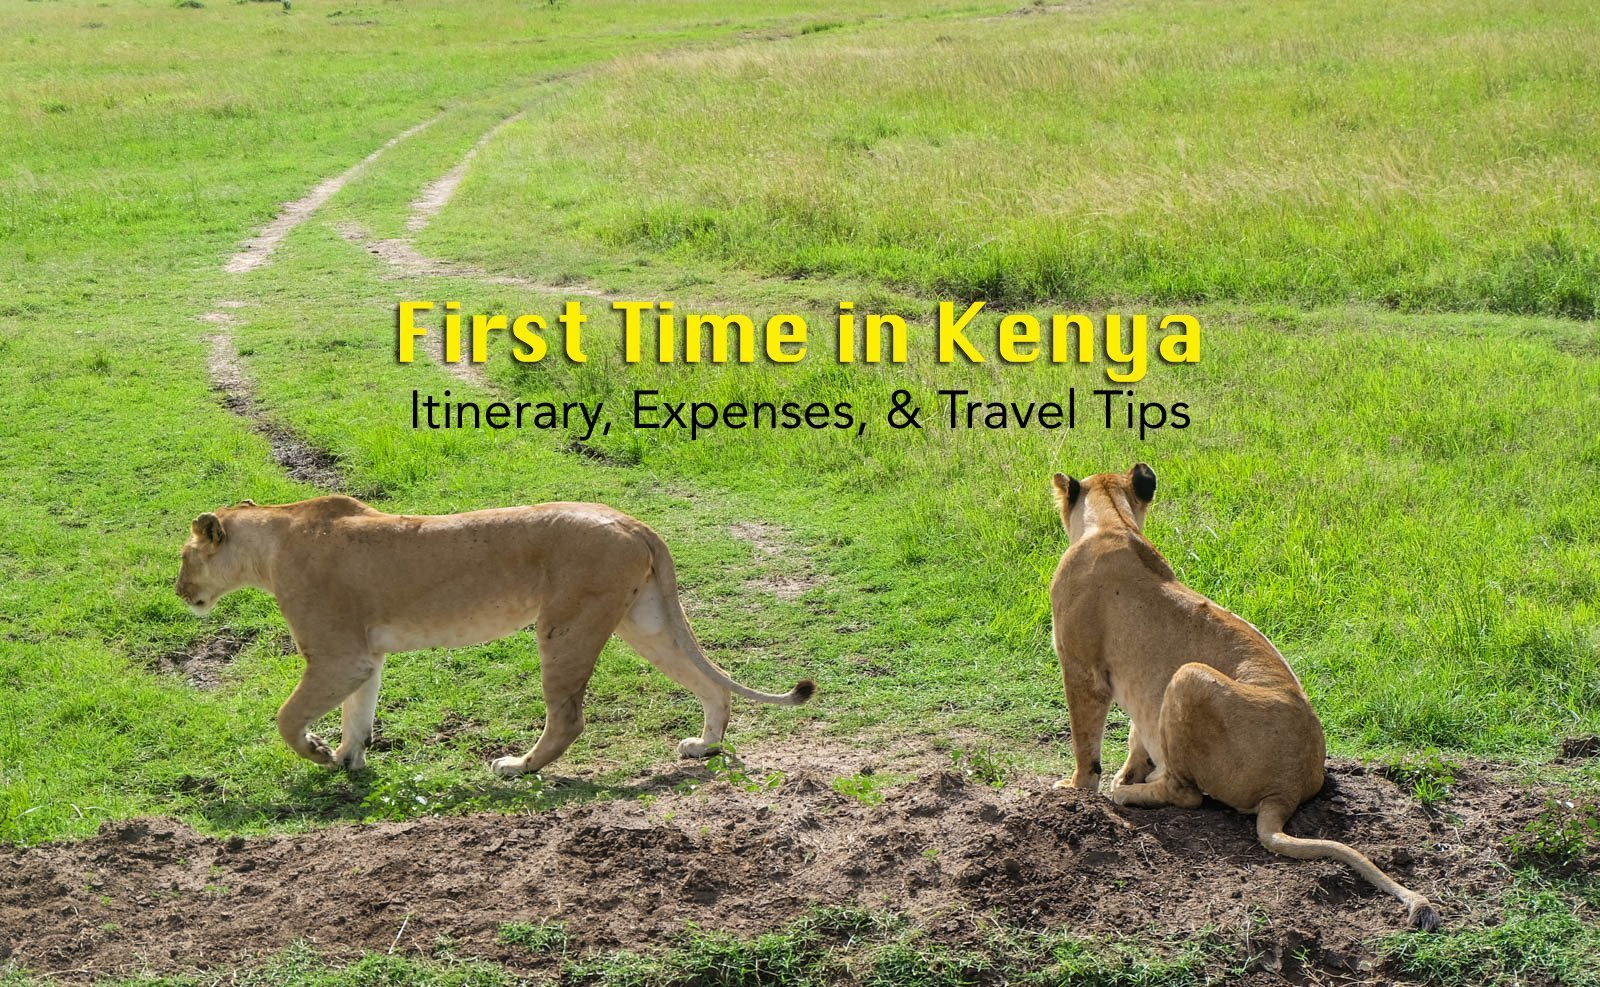 First Time in Kenya: What to Expect, Itinerary, Expenses, and Travel Tips